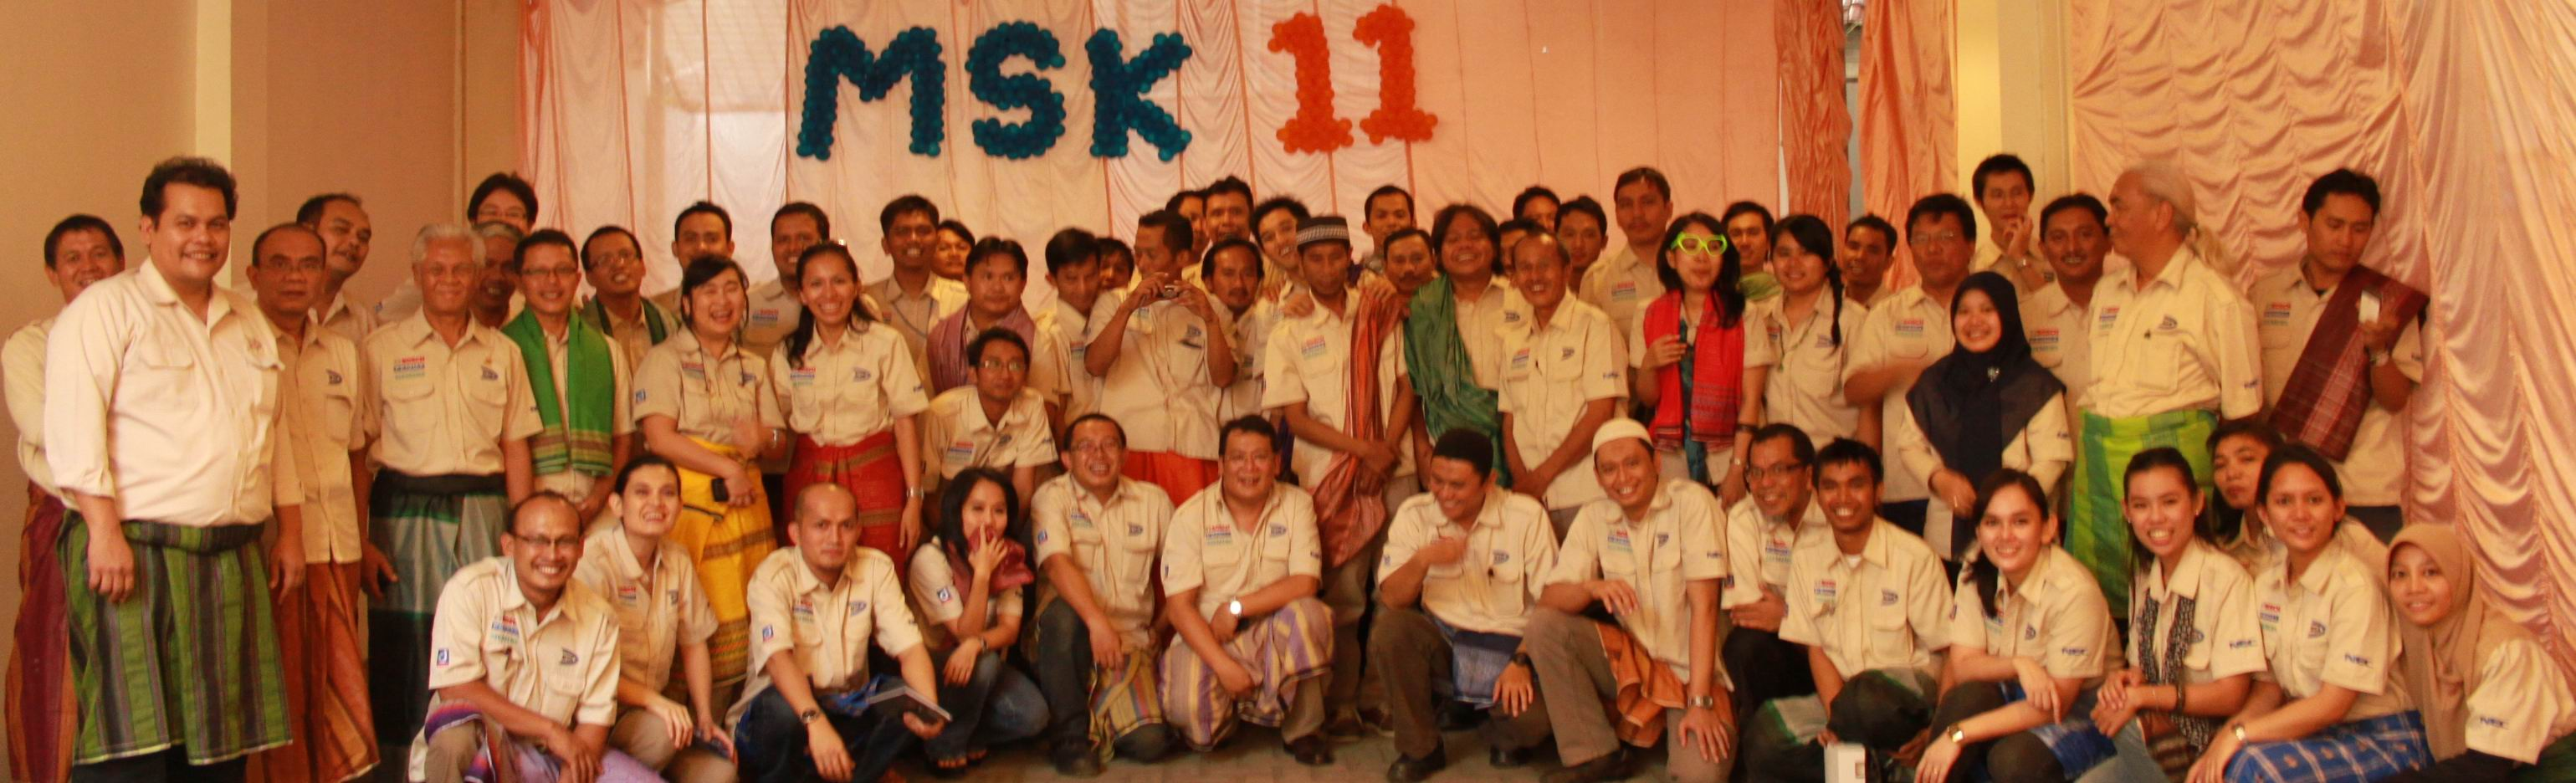 MSK 11th Aniversary